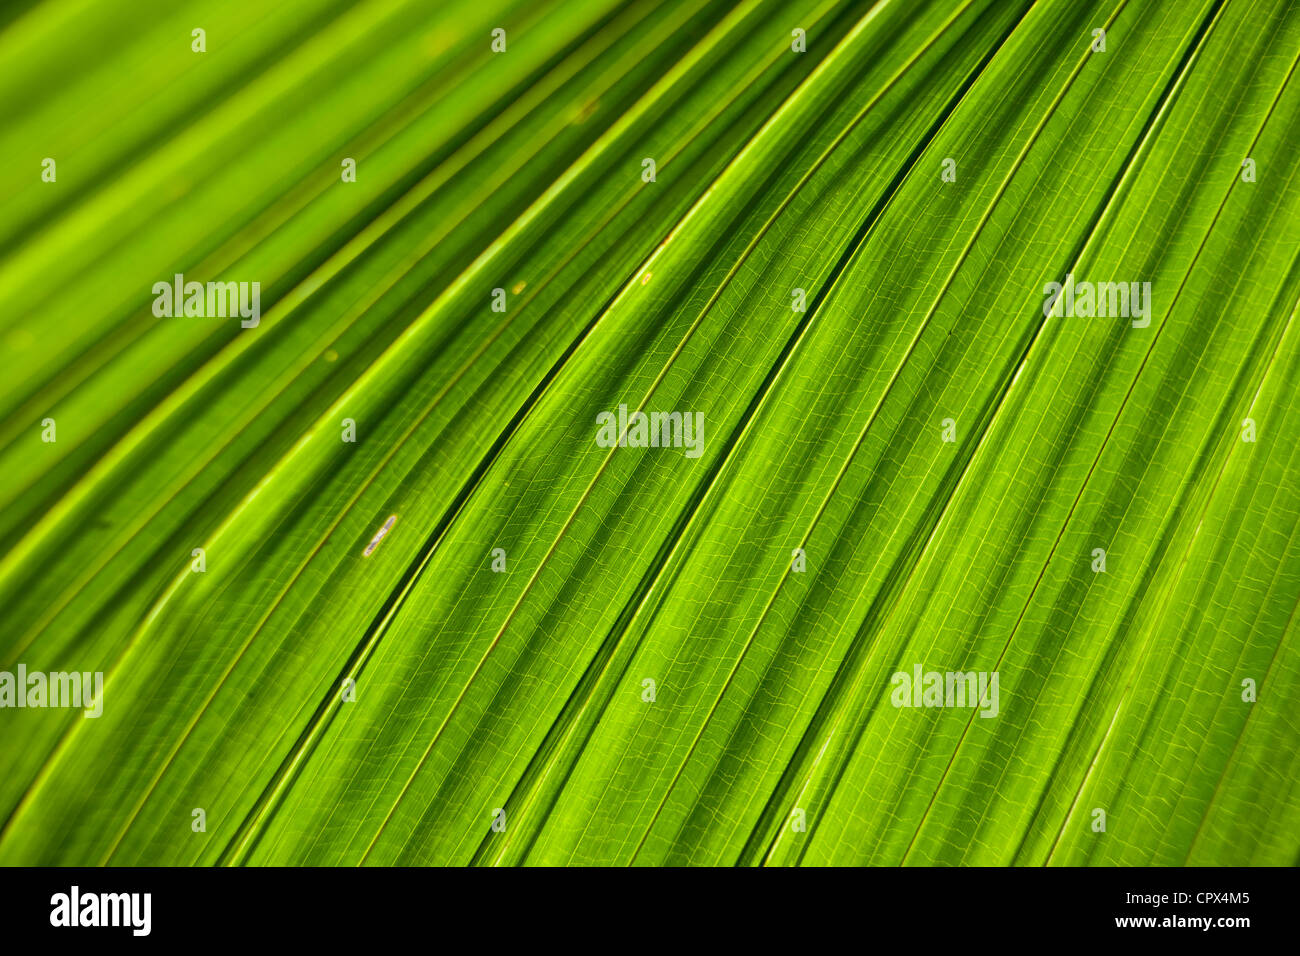 Détail de la feuille, l'Siquijor, Visayas, Philippines Photo Stock